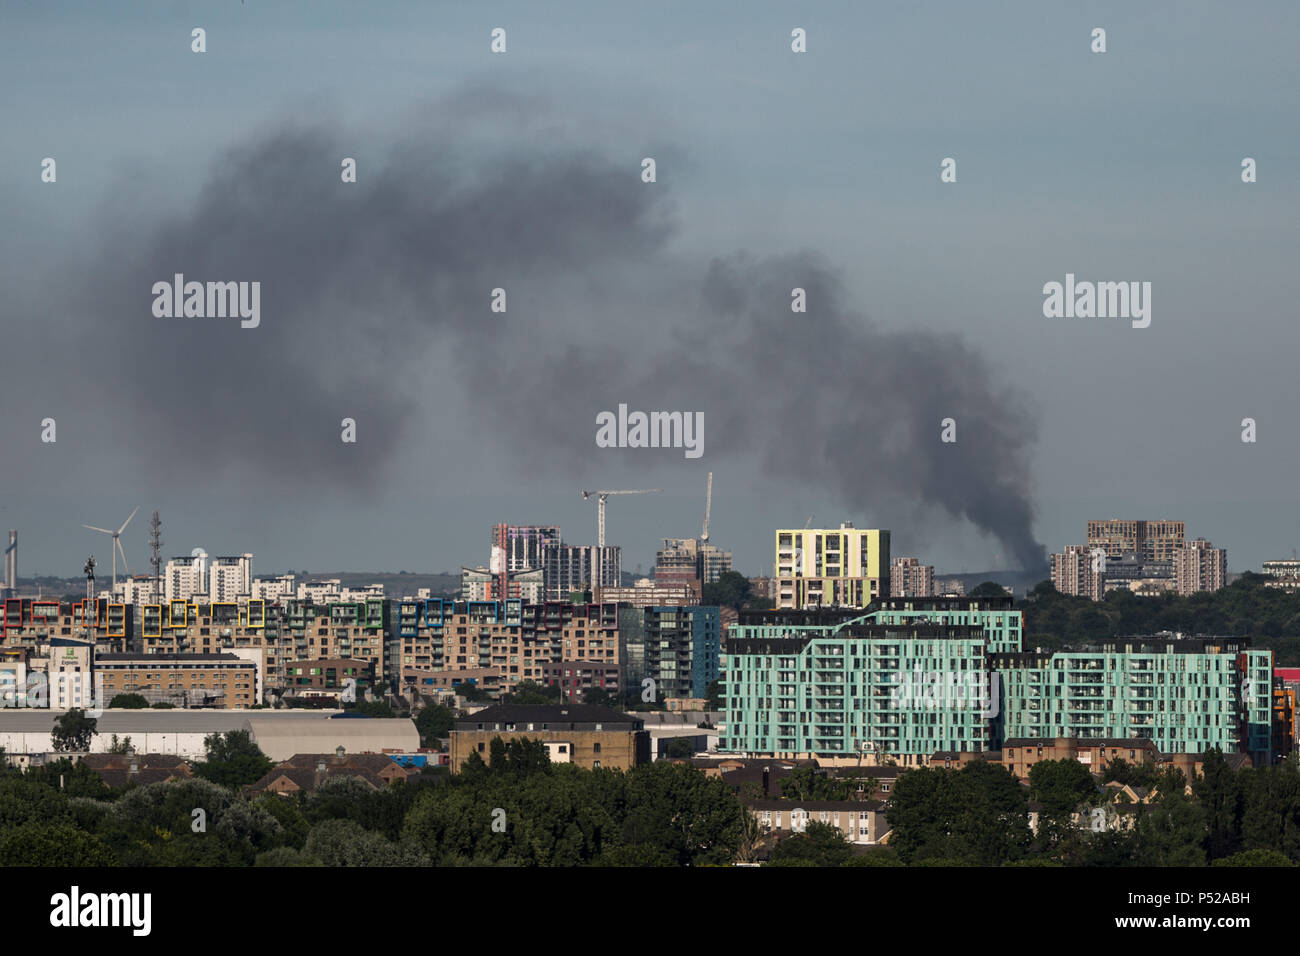 London, UK. 24th June, 2018. London Fire: Black smoke rises from a landfill site fire in Rainham, east London with two hectares alight. Ten fire engines, 72 firefighters and officers are present at the landfill site in Coldharbour Lane, Rainham this afternoon. The Brigade was called at 1355 and firefighters are likely to remain at the scene throughout the evening. The cause of the fire is not known at this stage. Credit: Guy Corbishley/Alamy Live News Stock Photo